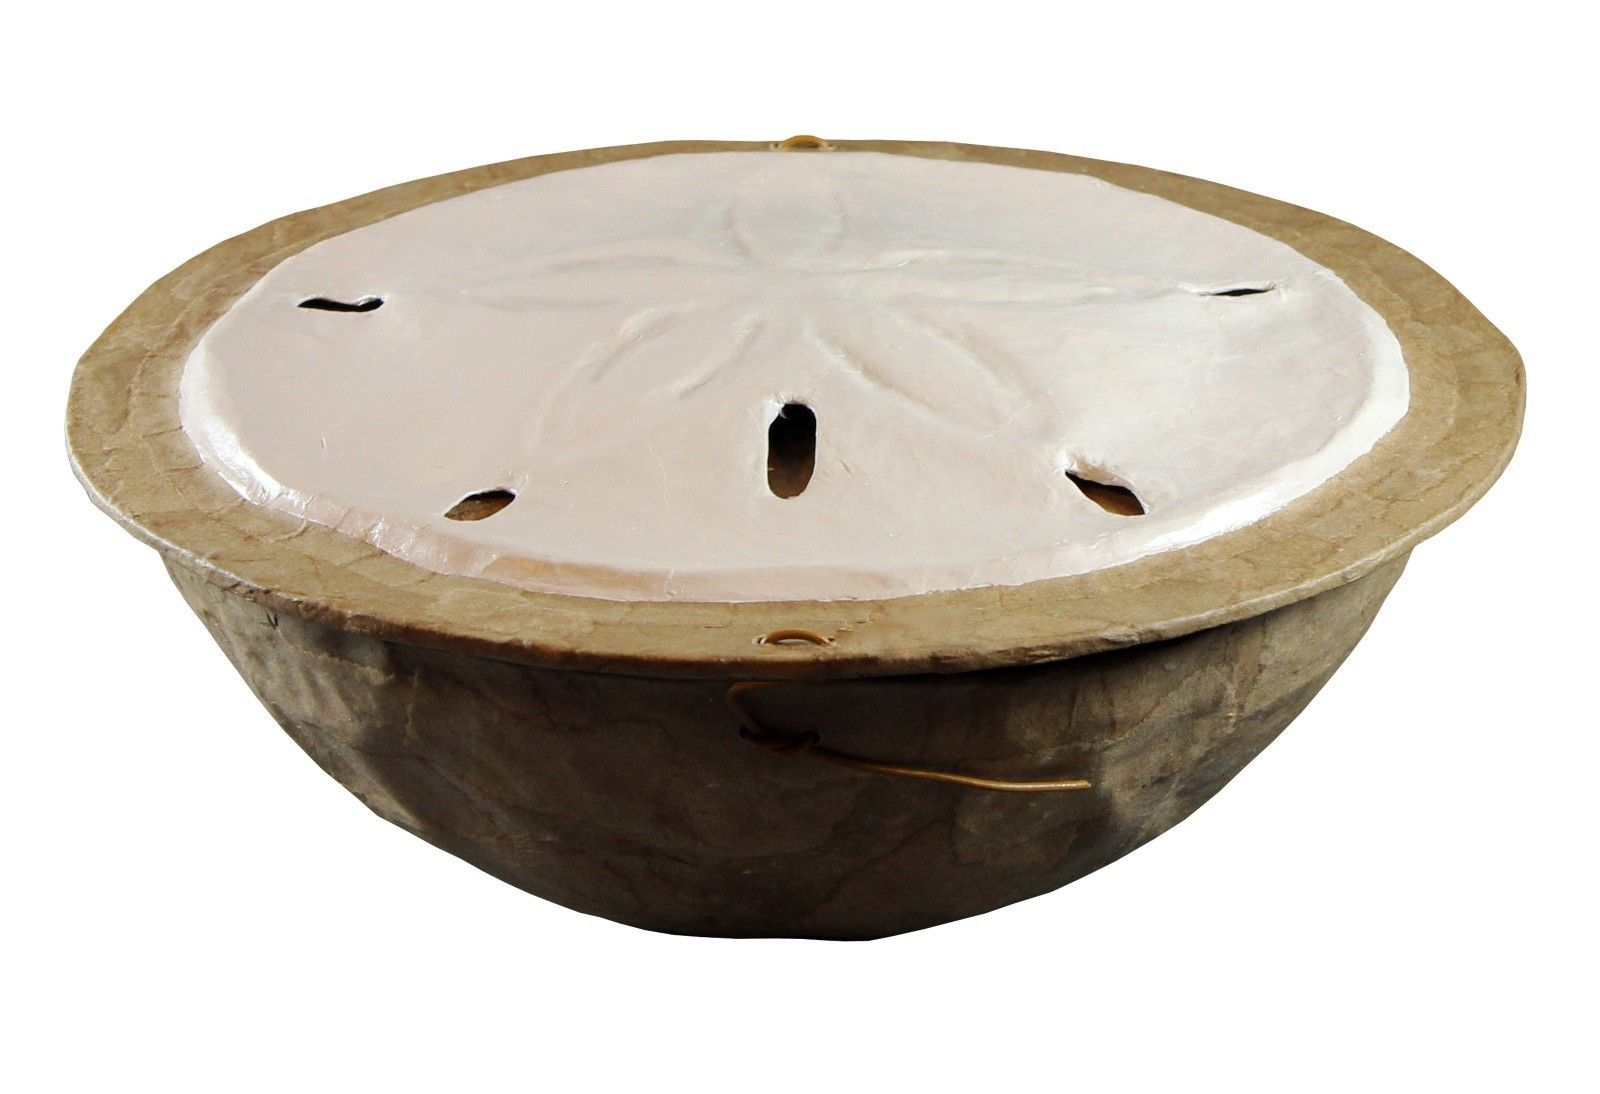 Primary image for Biodegradable Sand Dollar Urn, Hand Made Adult/Companion Funeral Cremation Urn